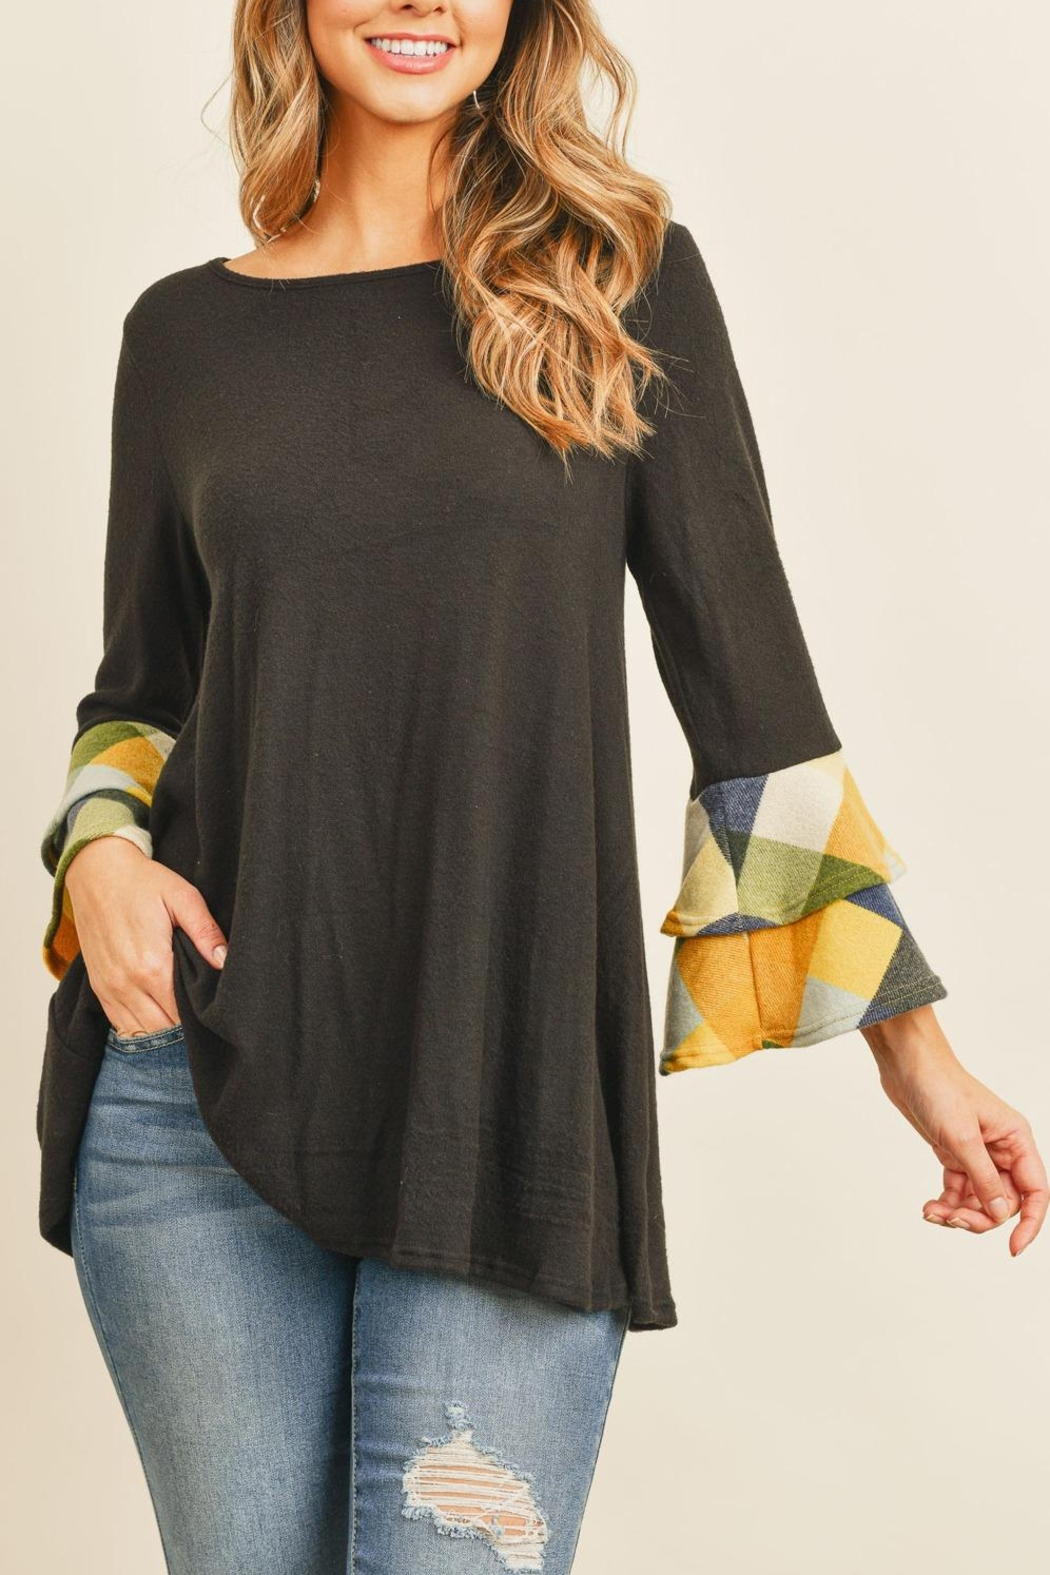 Riah Fashion Plaid-Layered-Bell-Sleeve-Boat-Neck-Solid-Top - Main Image